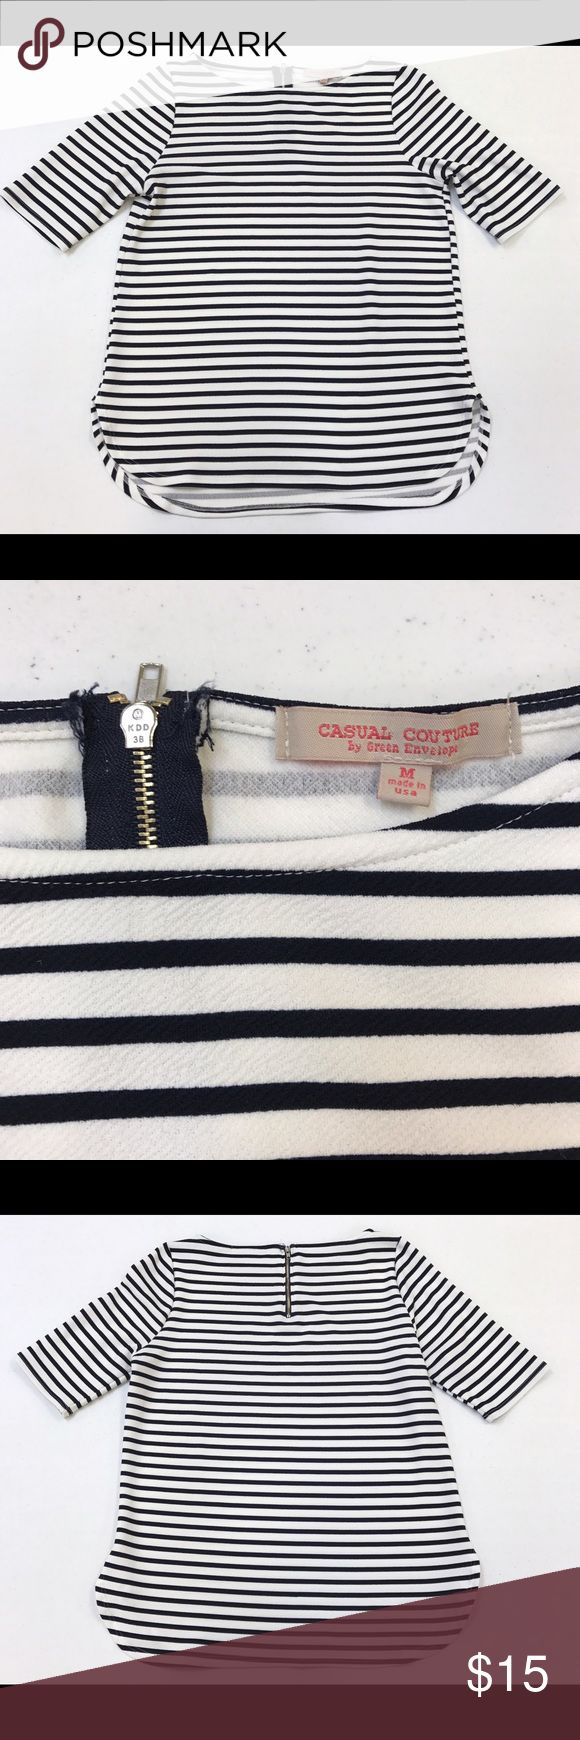 [Casual Couture] navy career striped Blouse In excellent condition with no flaws. Made with great quality. Can be worn for work or a casual evening. Really nice shirt! casual couture Tops Blouses